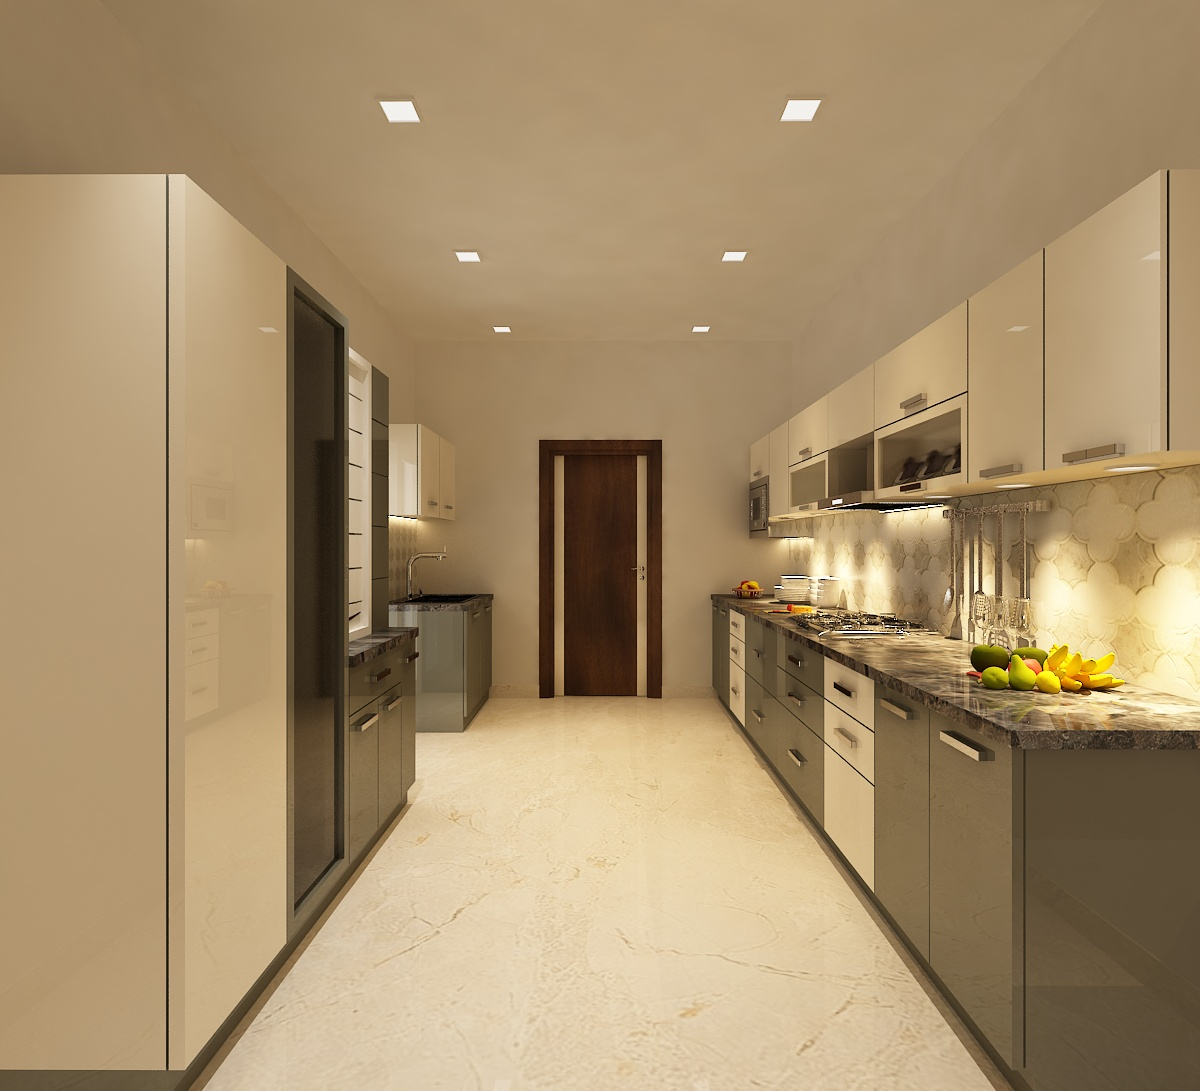 Godrej Kitchens By Design Today Design Today